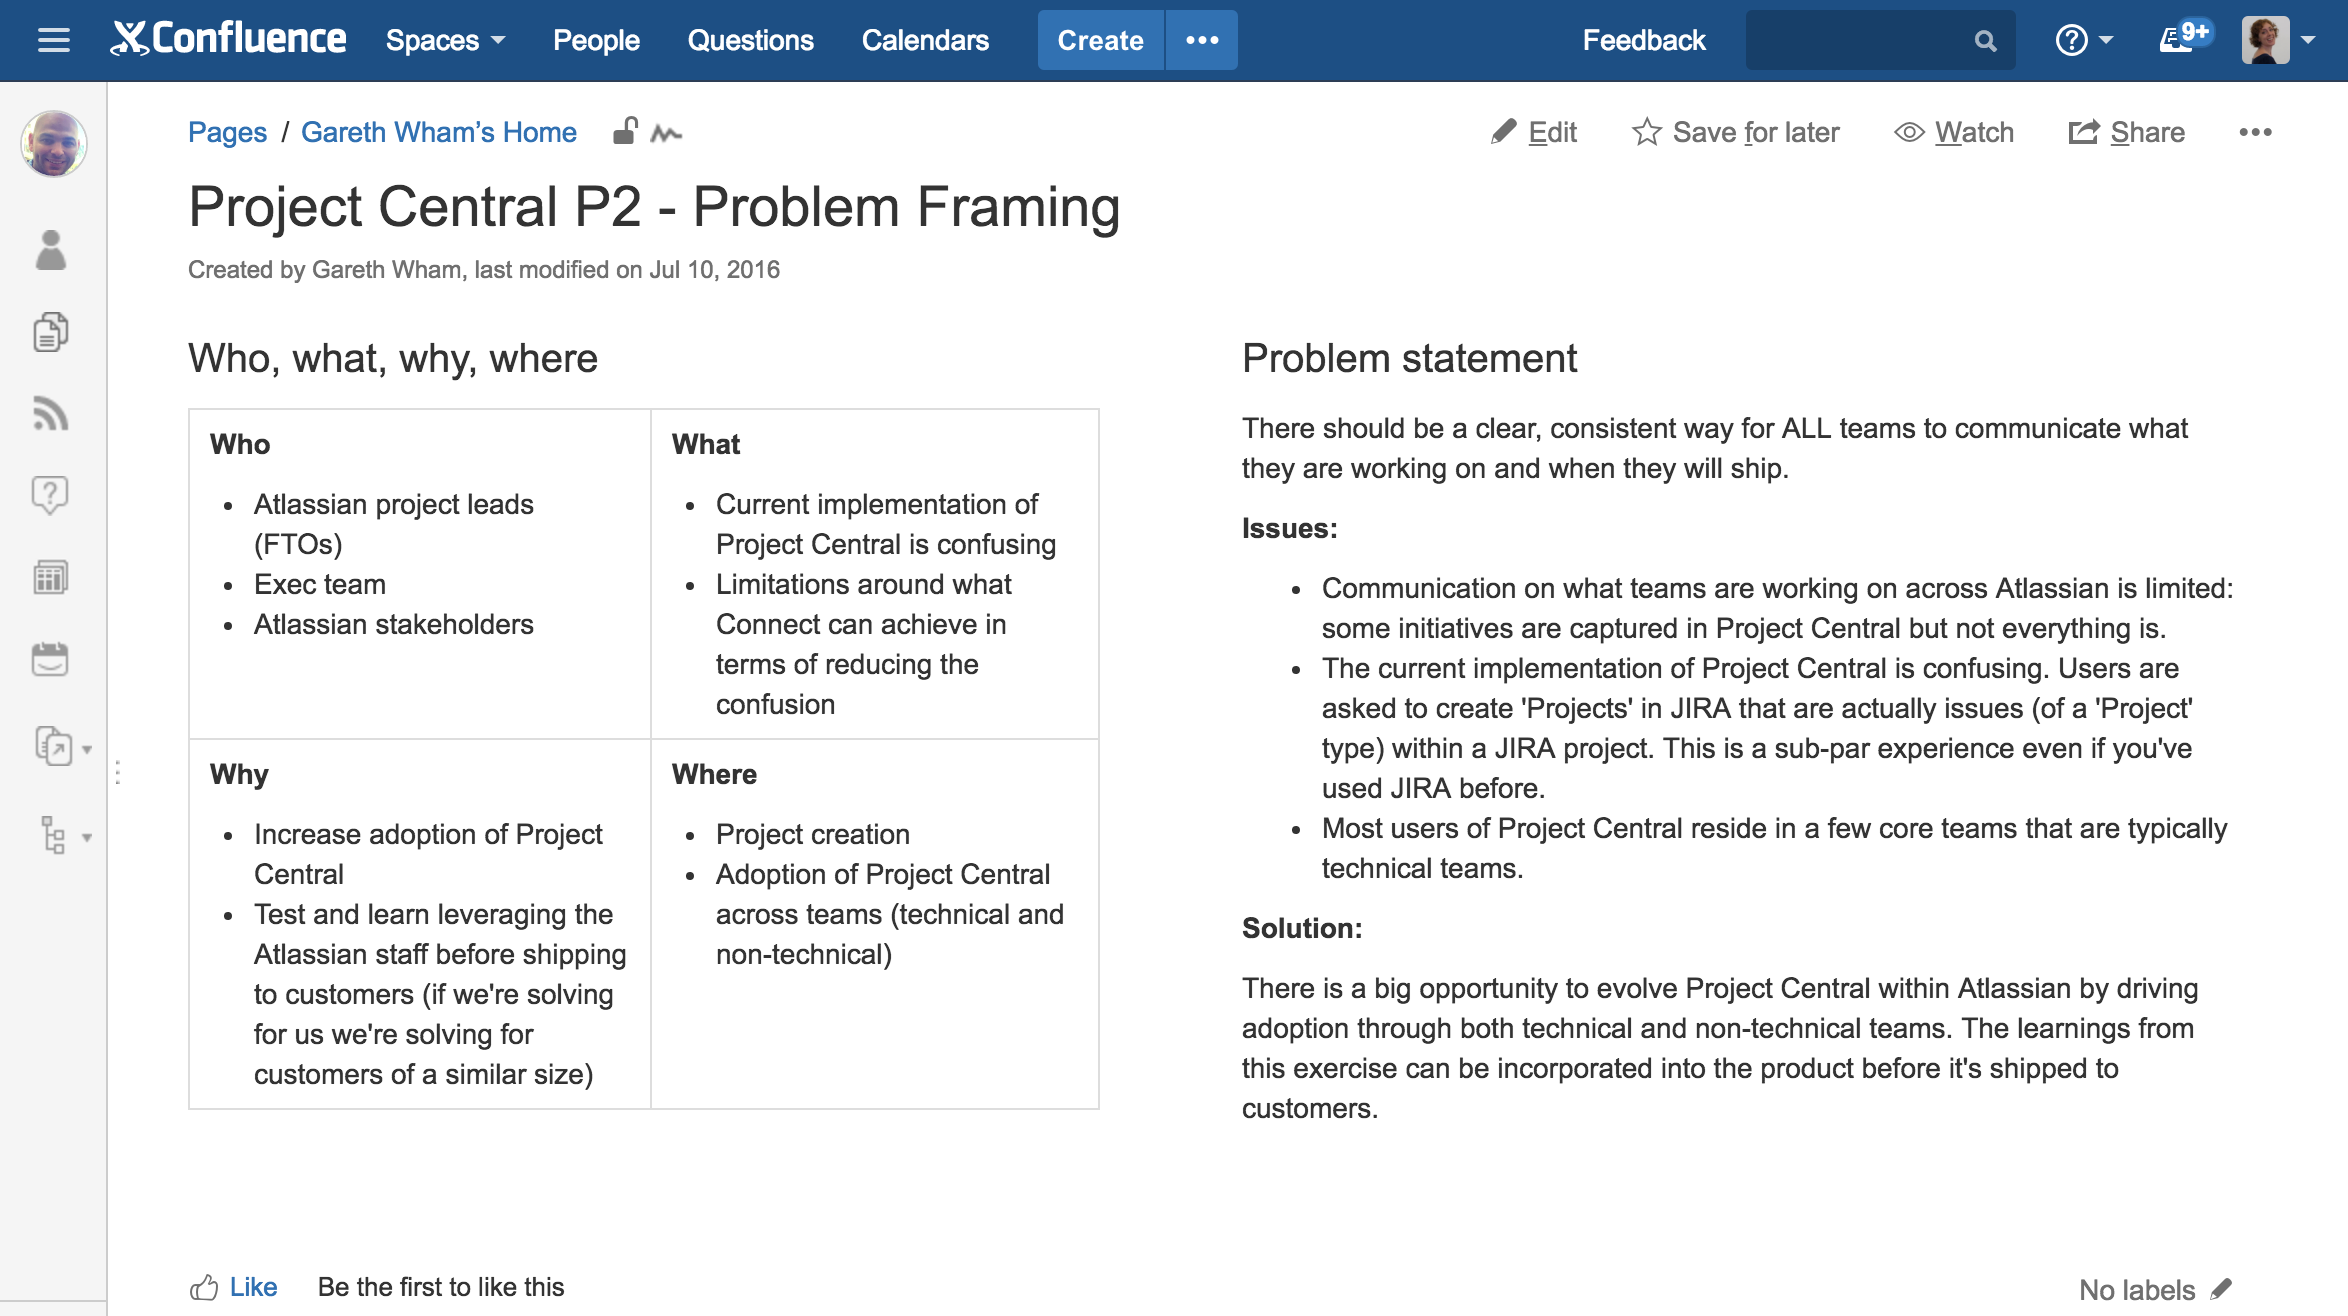 The final problem statement and background info from one of Atlassian's teams.